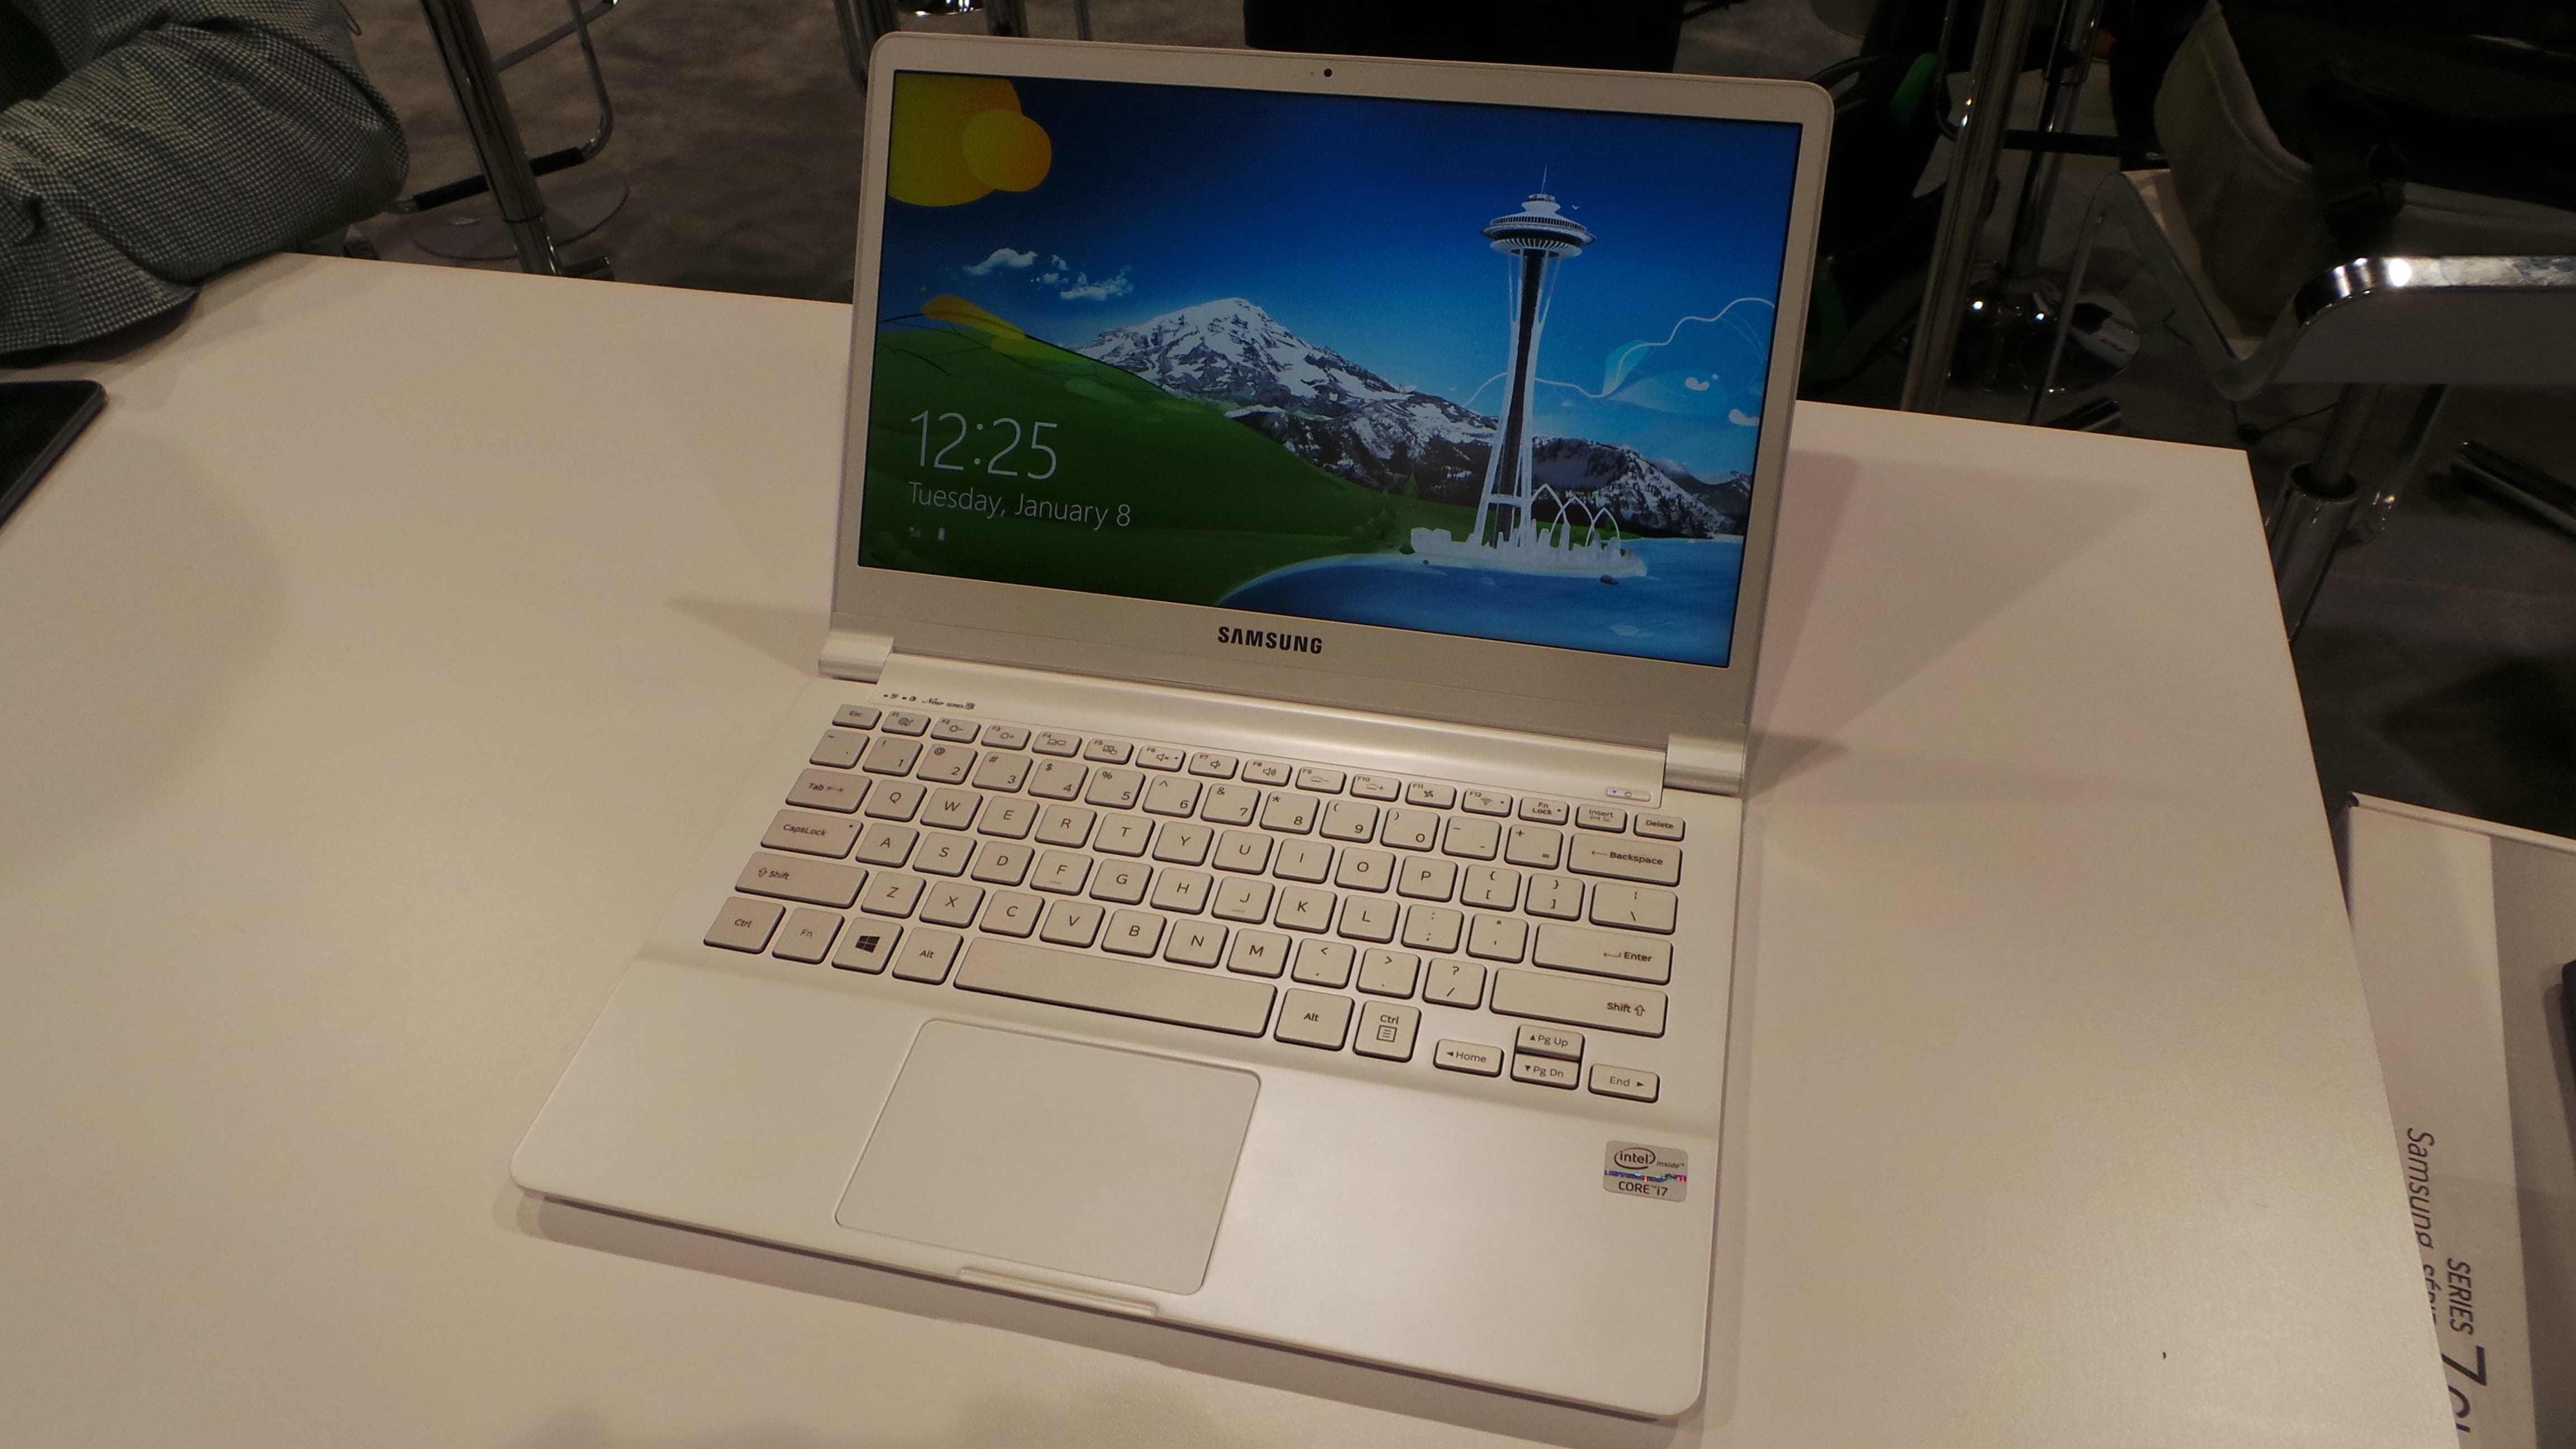 CES 2013: Samsung New Series 9 in weiß im Hands-on [Fotos]